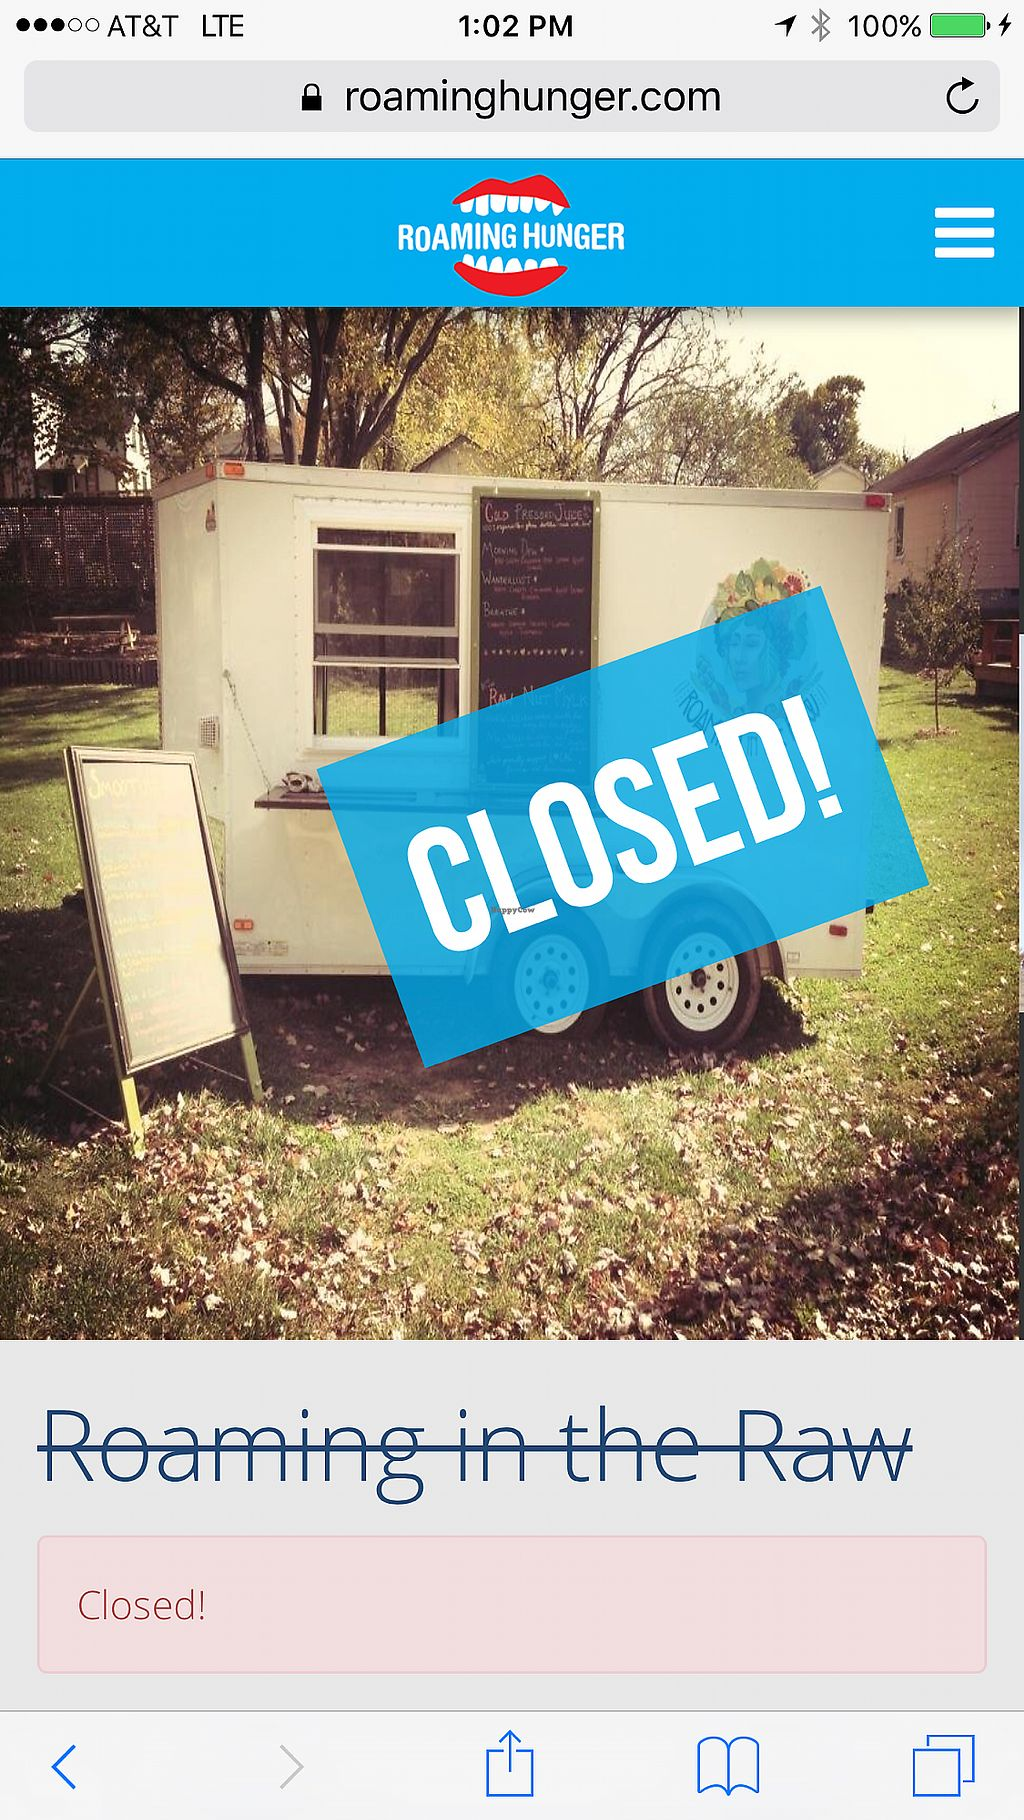 """Photo of CLOSED: Roaming in the Raw - Food Truck  by <a href=""""/members/profile/ashapants"""">ashapants</a> <br/>closed :( <br/> July 31, 2017  - <a href='/contact/abuse/image/41769/287213'>Report</a>"""